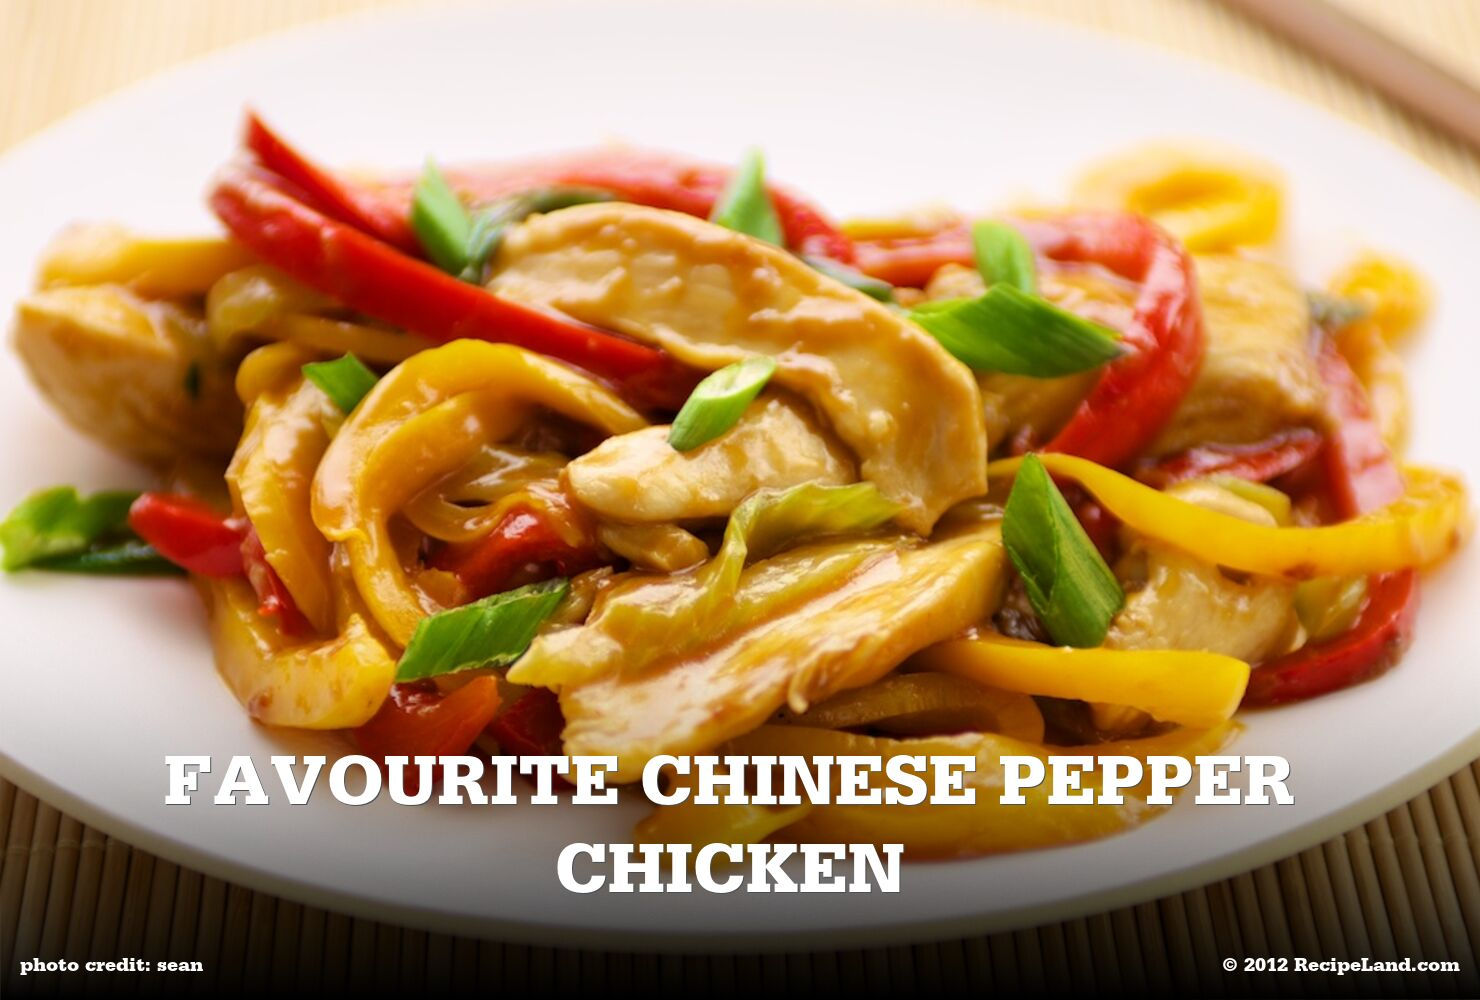 Favourite Chinese Pepper Chicken